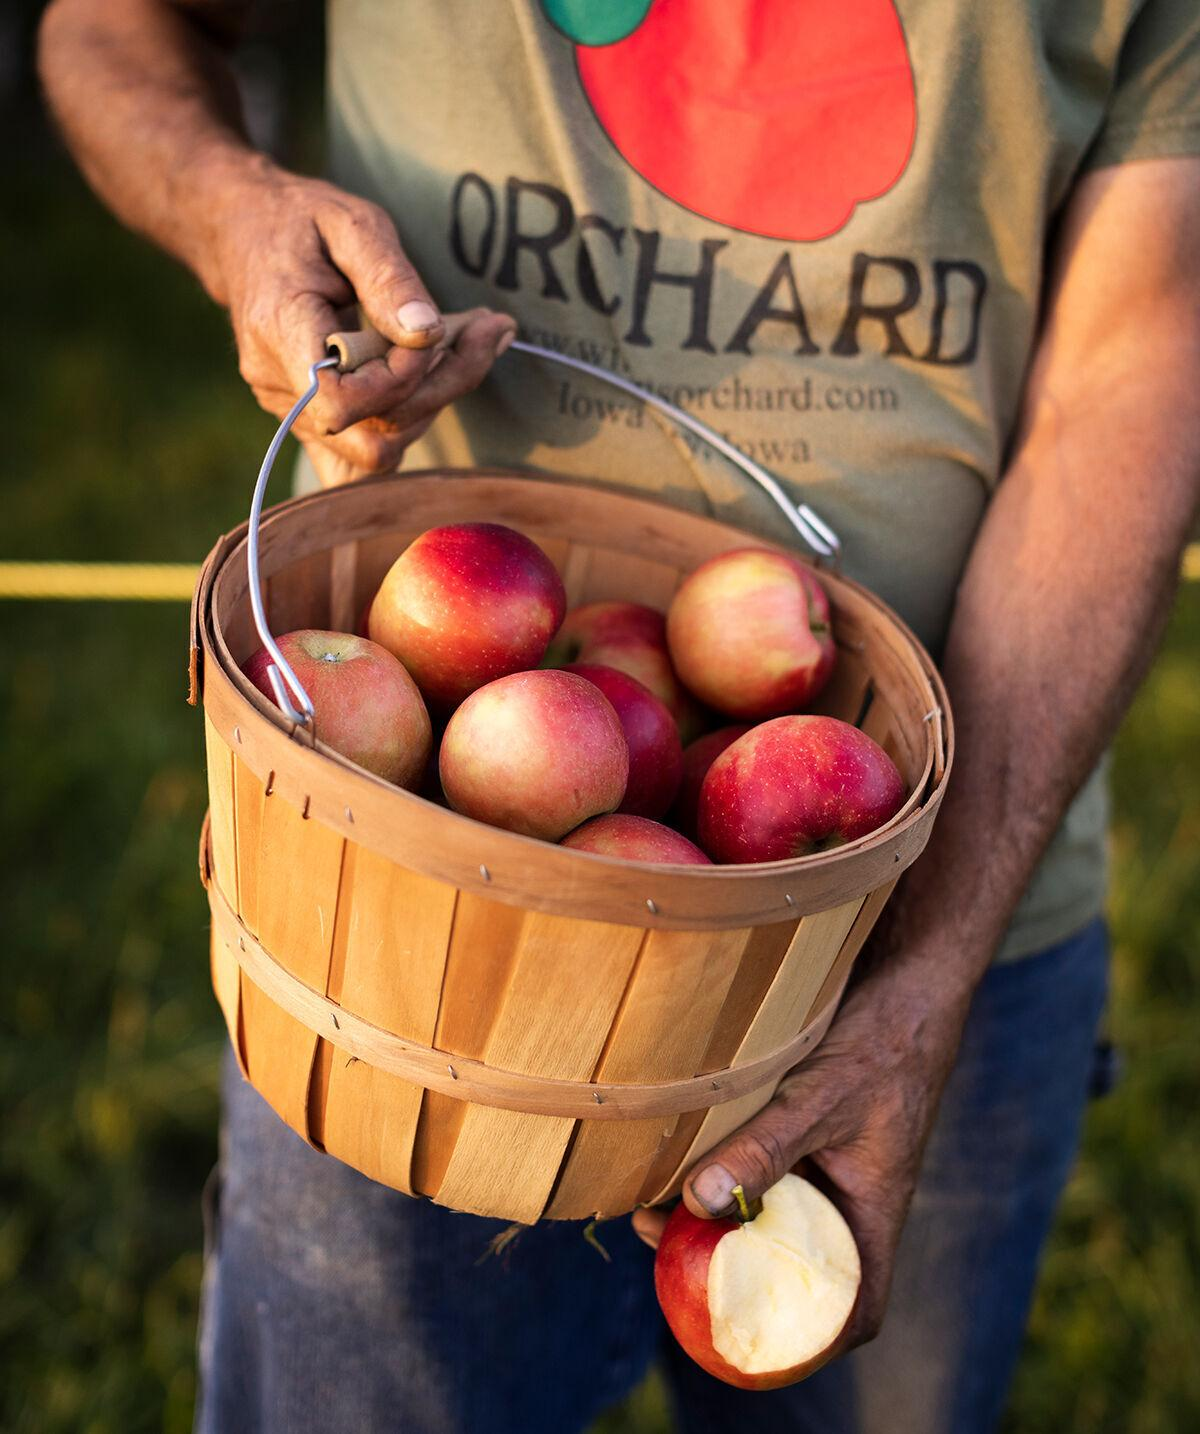 Wilson's Orchard basket of apples